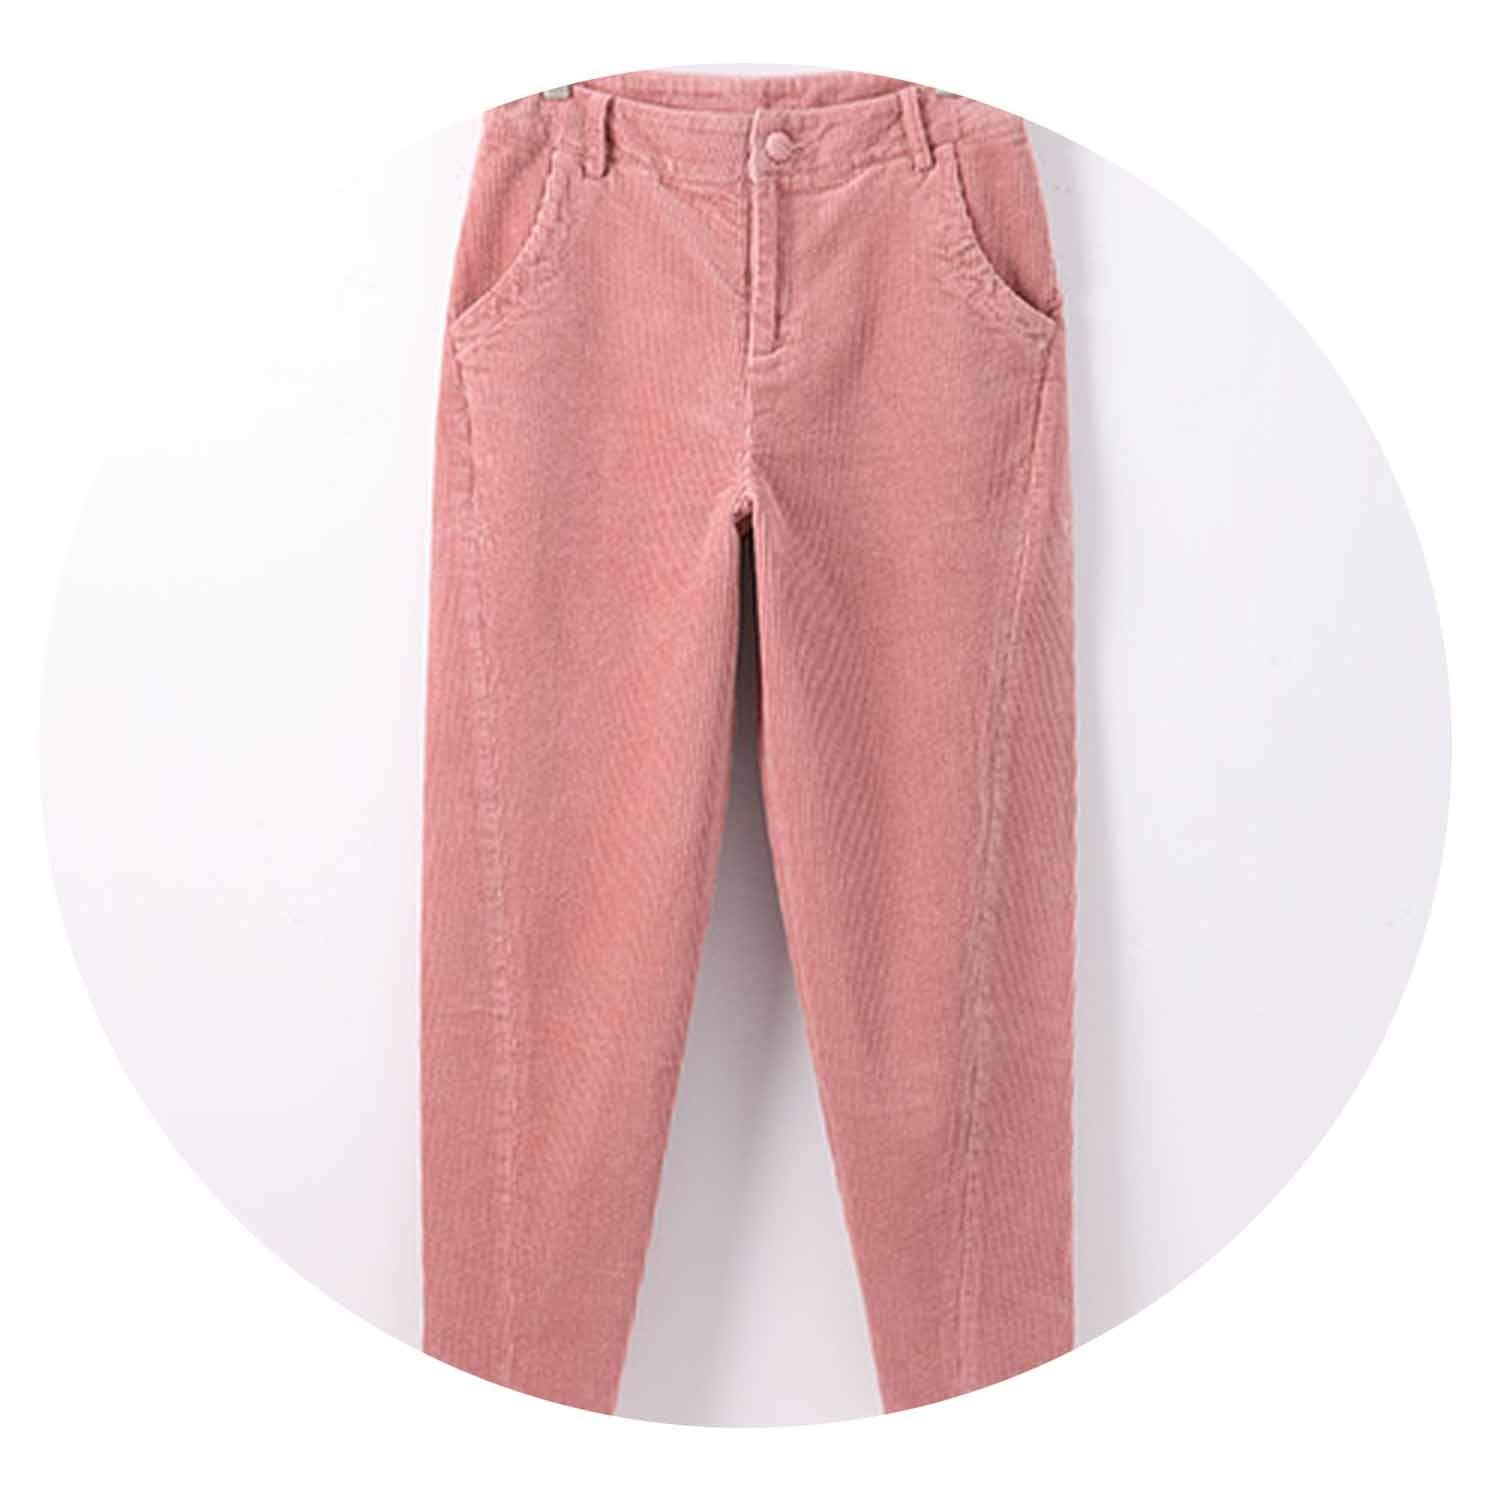 e8bca6d8 Harem Pants Women's Trousers with High Waist Loose Casual Corduroy Pants,  Pink, 29 at Amazon Women's Clothing store: